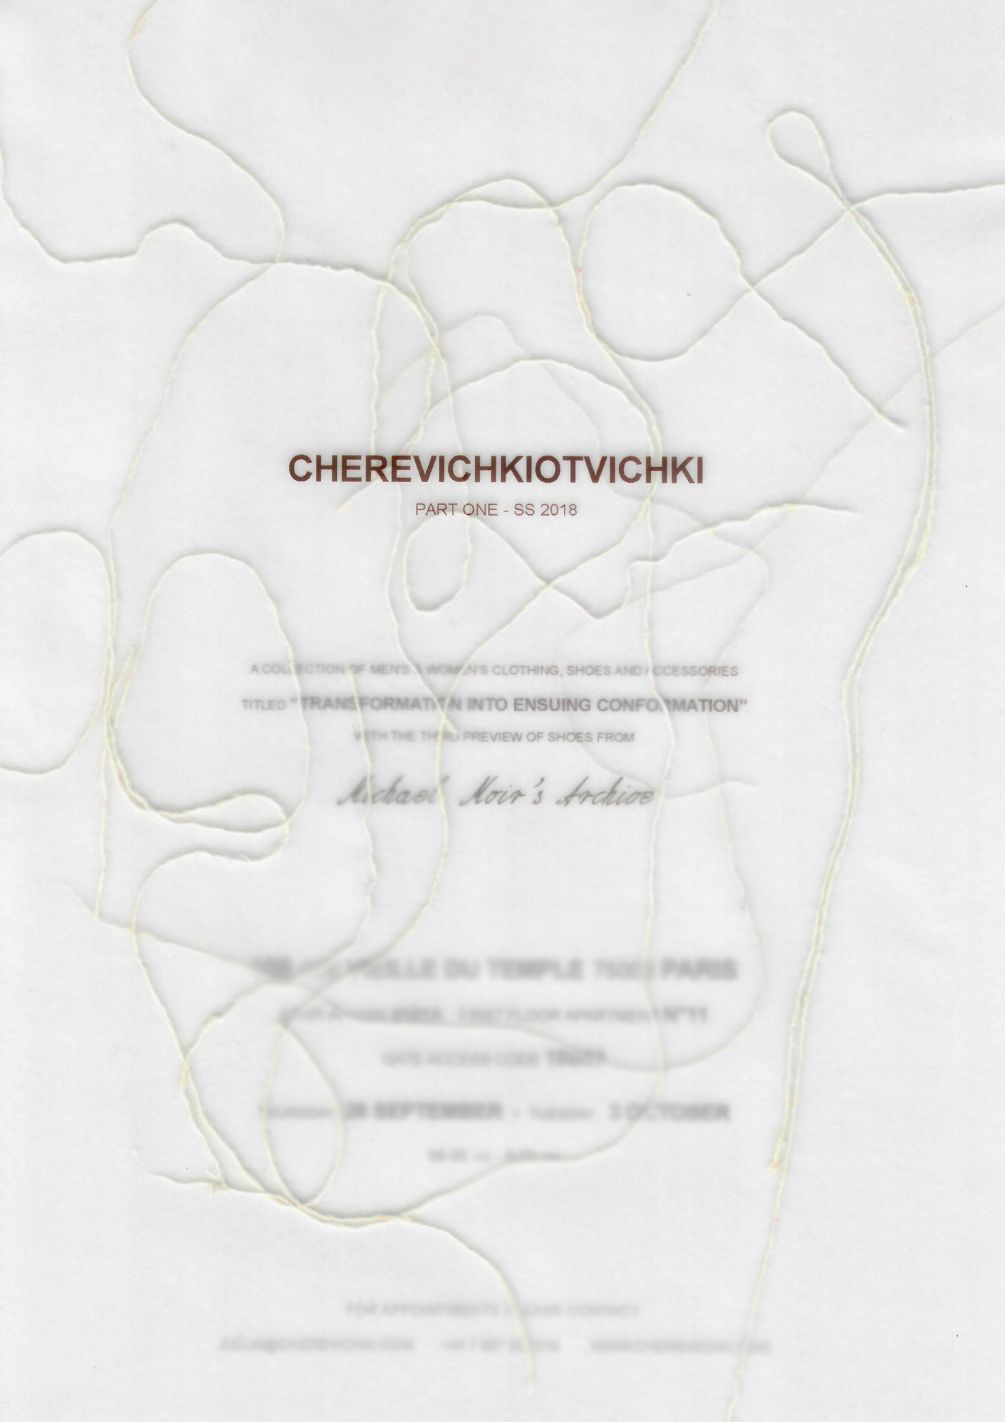 "'A Collection of Men's & Women's clothing, shoes and accessories titled ""TRANSFORMATION INTO ENSUING CONFORMATION"" with the third preview of shoes from Micheal Moir's Archive.'   'A shoe by Victoria', in the old Slavic language translates to the name of the clothing atelier 'cherevichki ot vichki.' The shoes are hand-made, natural dyed leather with wooden soles, using traditional Baltic techniques. Accessories include leather bags of the same quality and a collection of hand-dyed garments reminiscent of (to my eye) what was worn as undergarments in the late 1800's. It took me a week to get comfortable saying it, but now it's my favorite word. Cherevichkiotvichki. Try it."